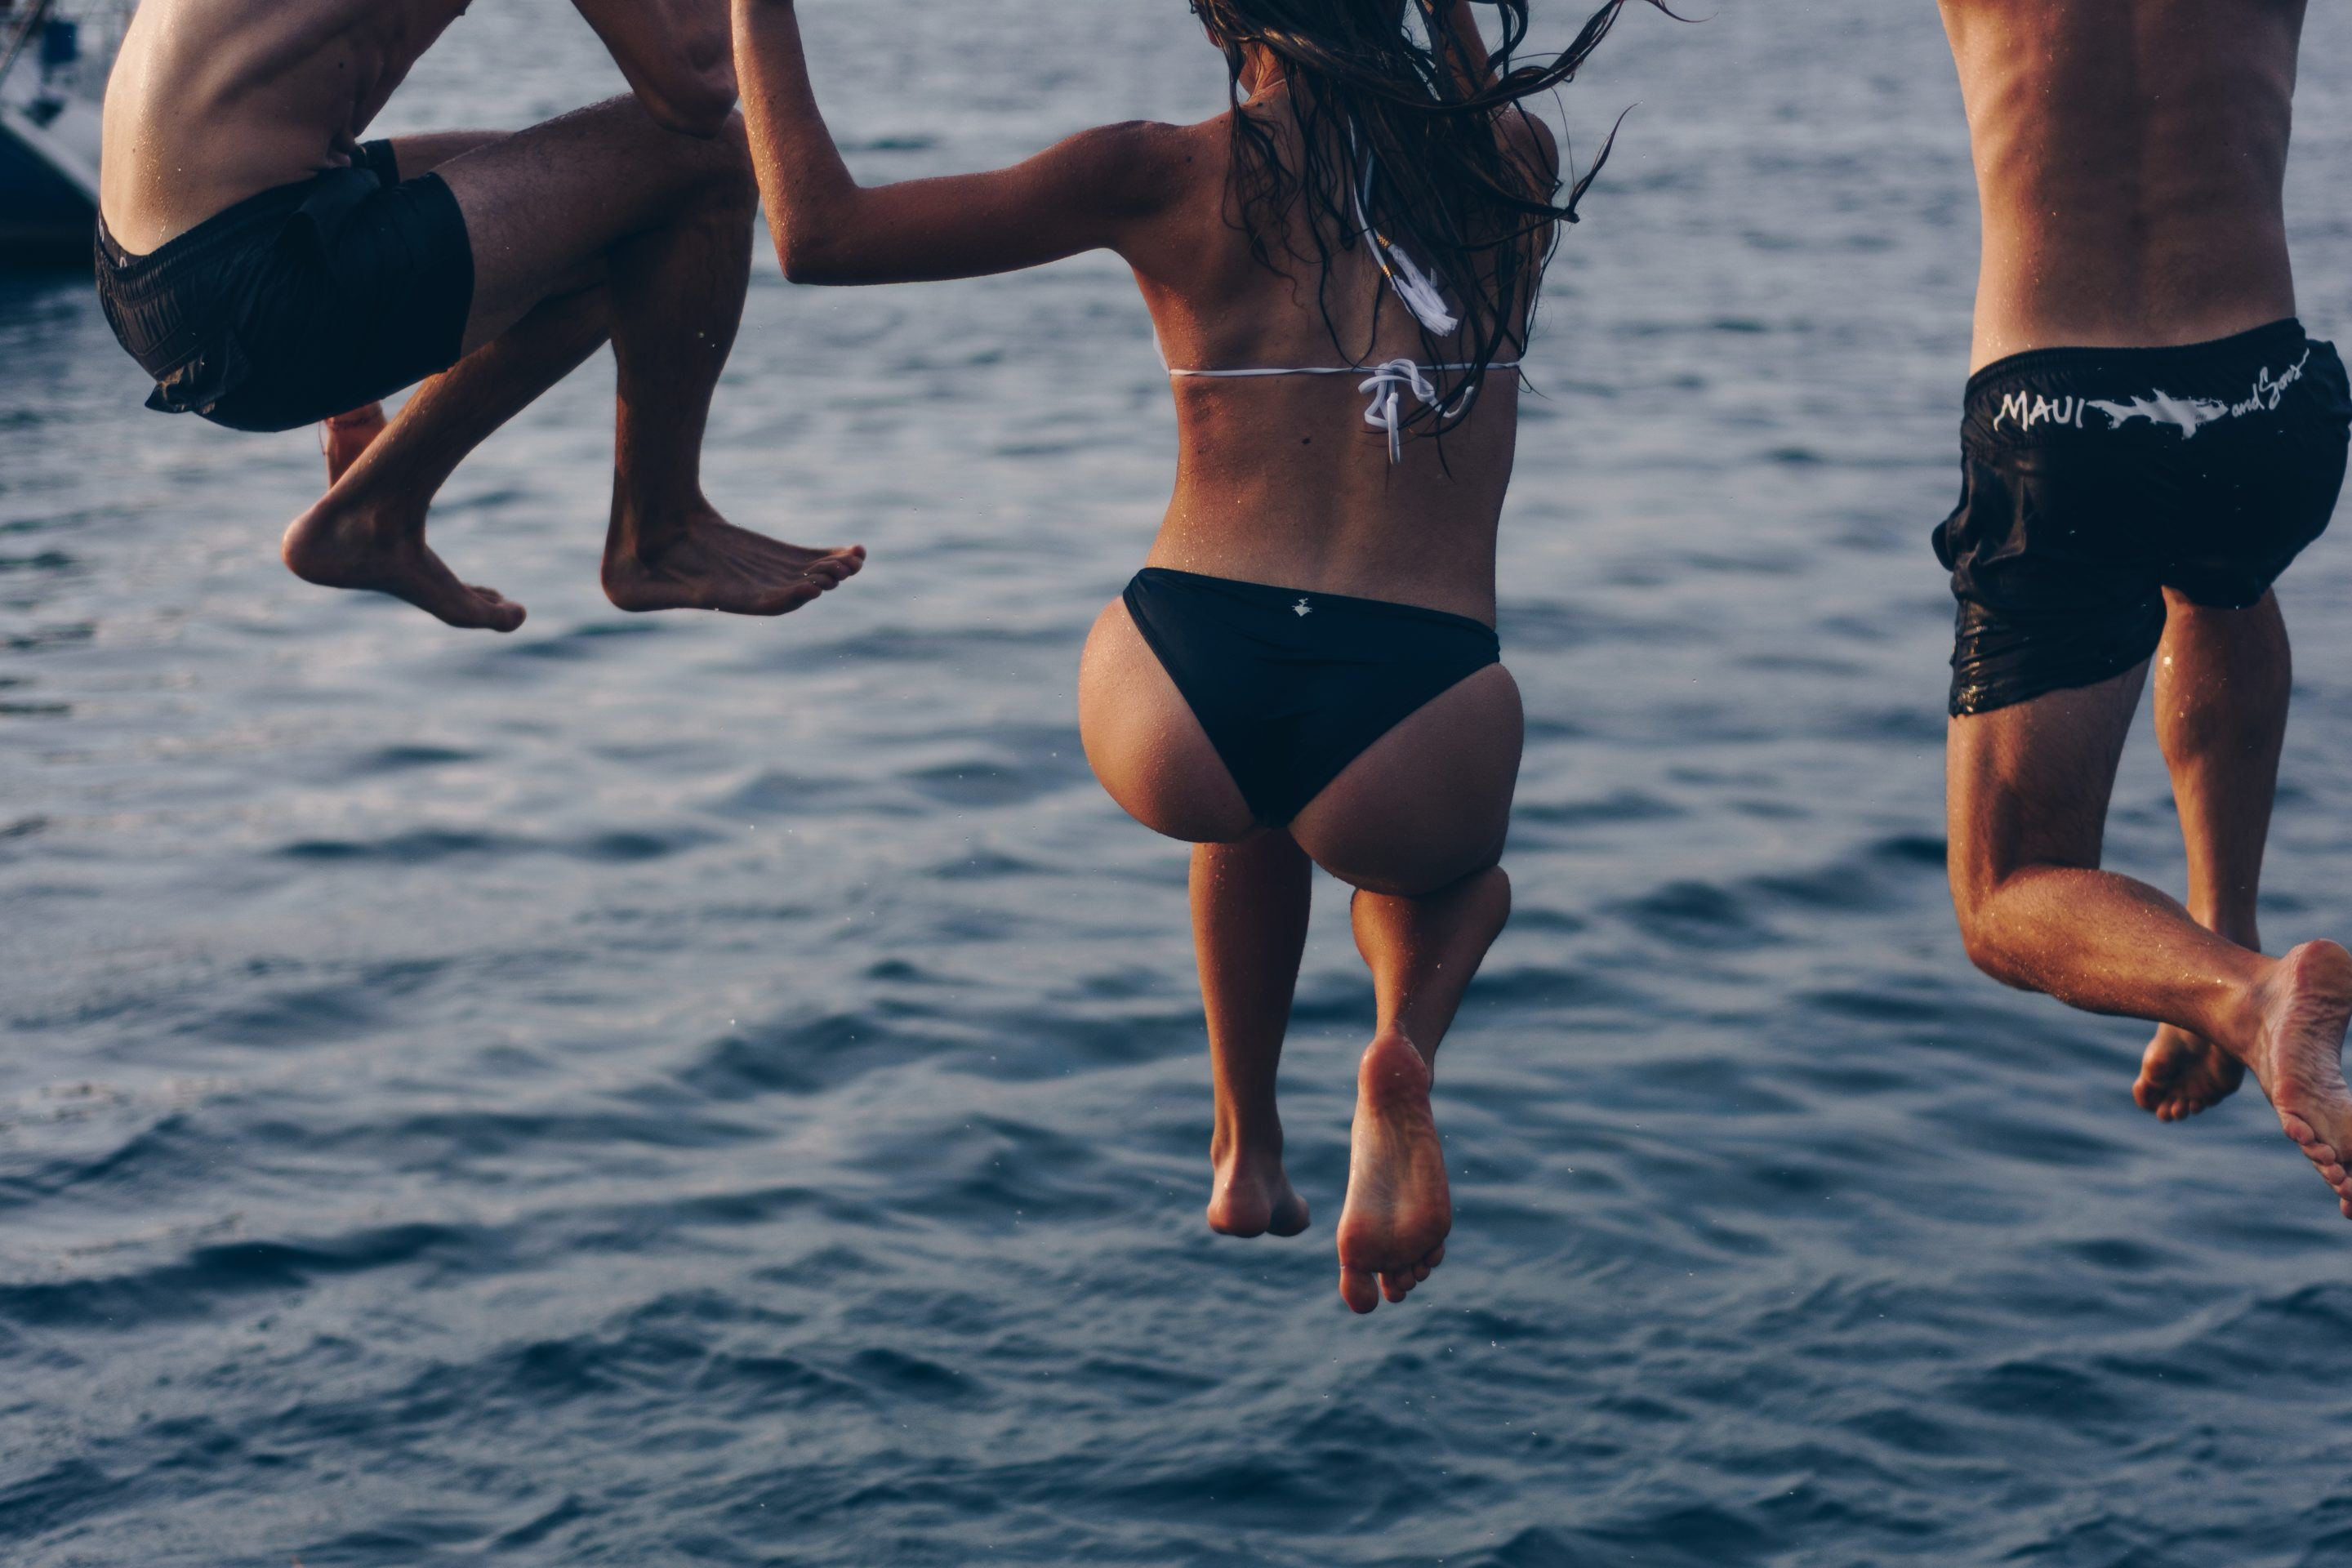 Jumping in the ocean to unplug.